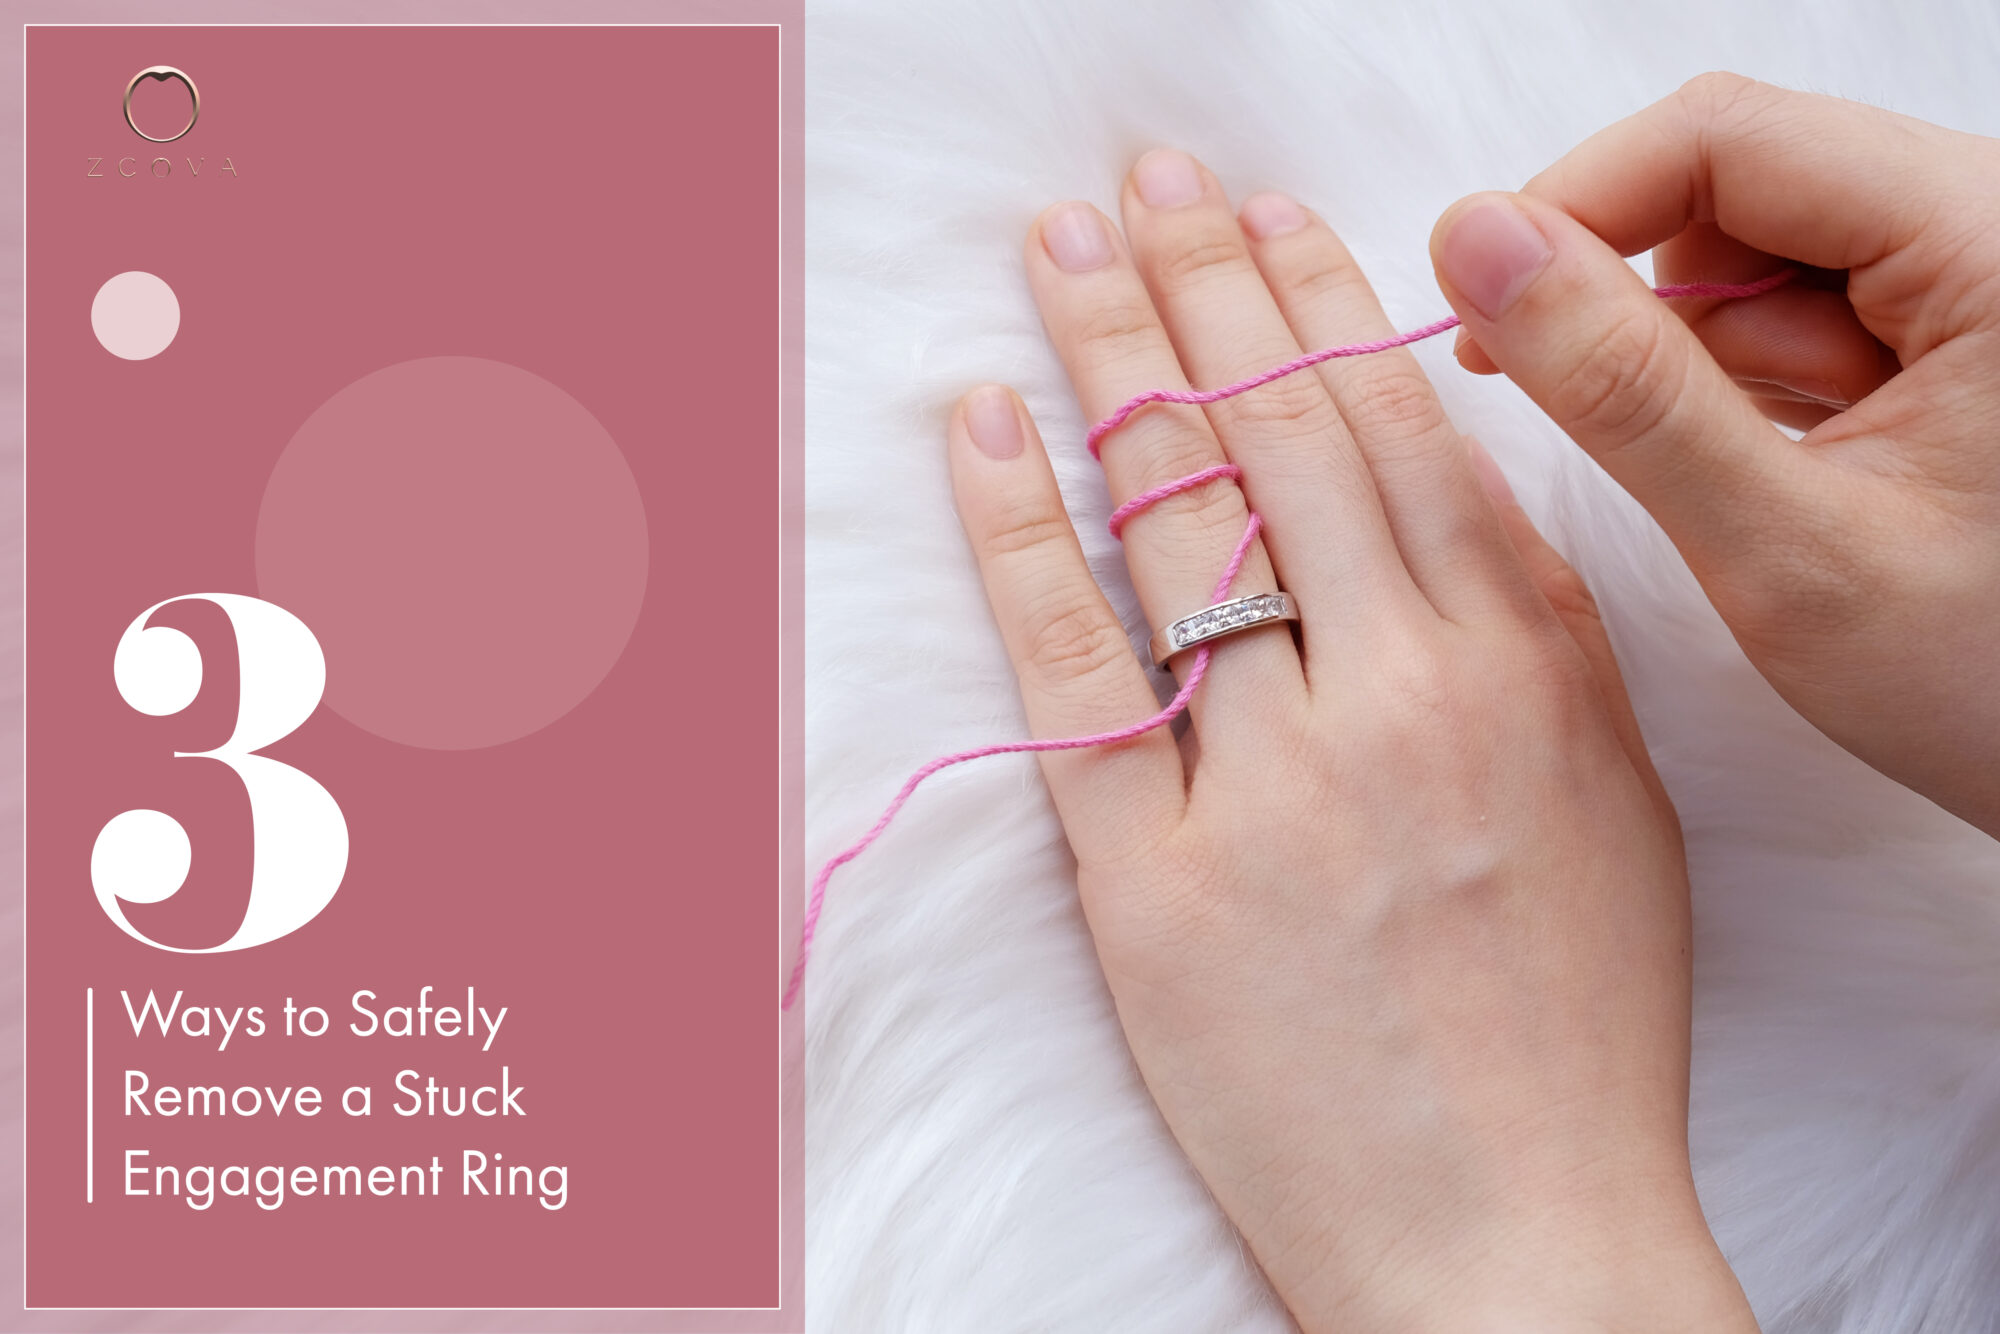 3 ways to safely remove a stuck engagement ring